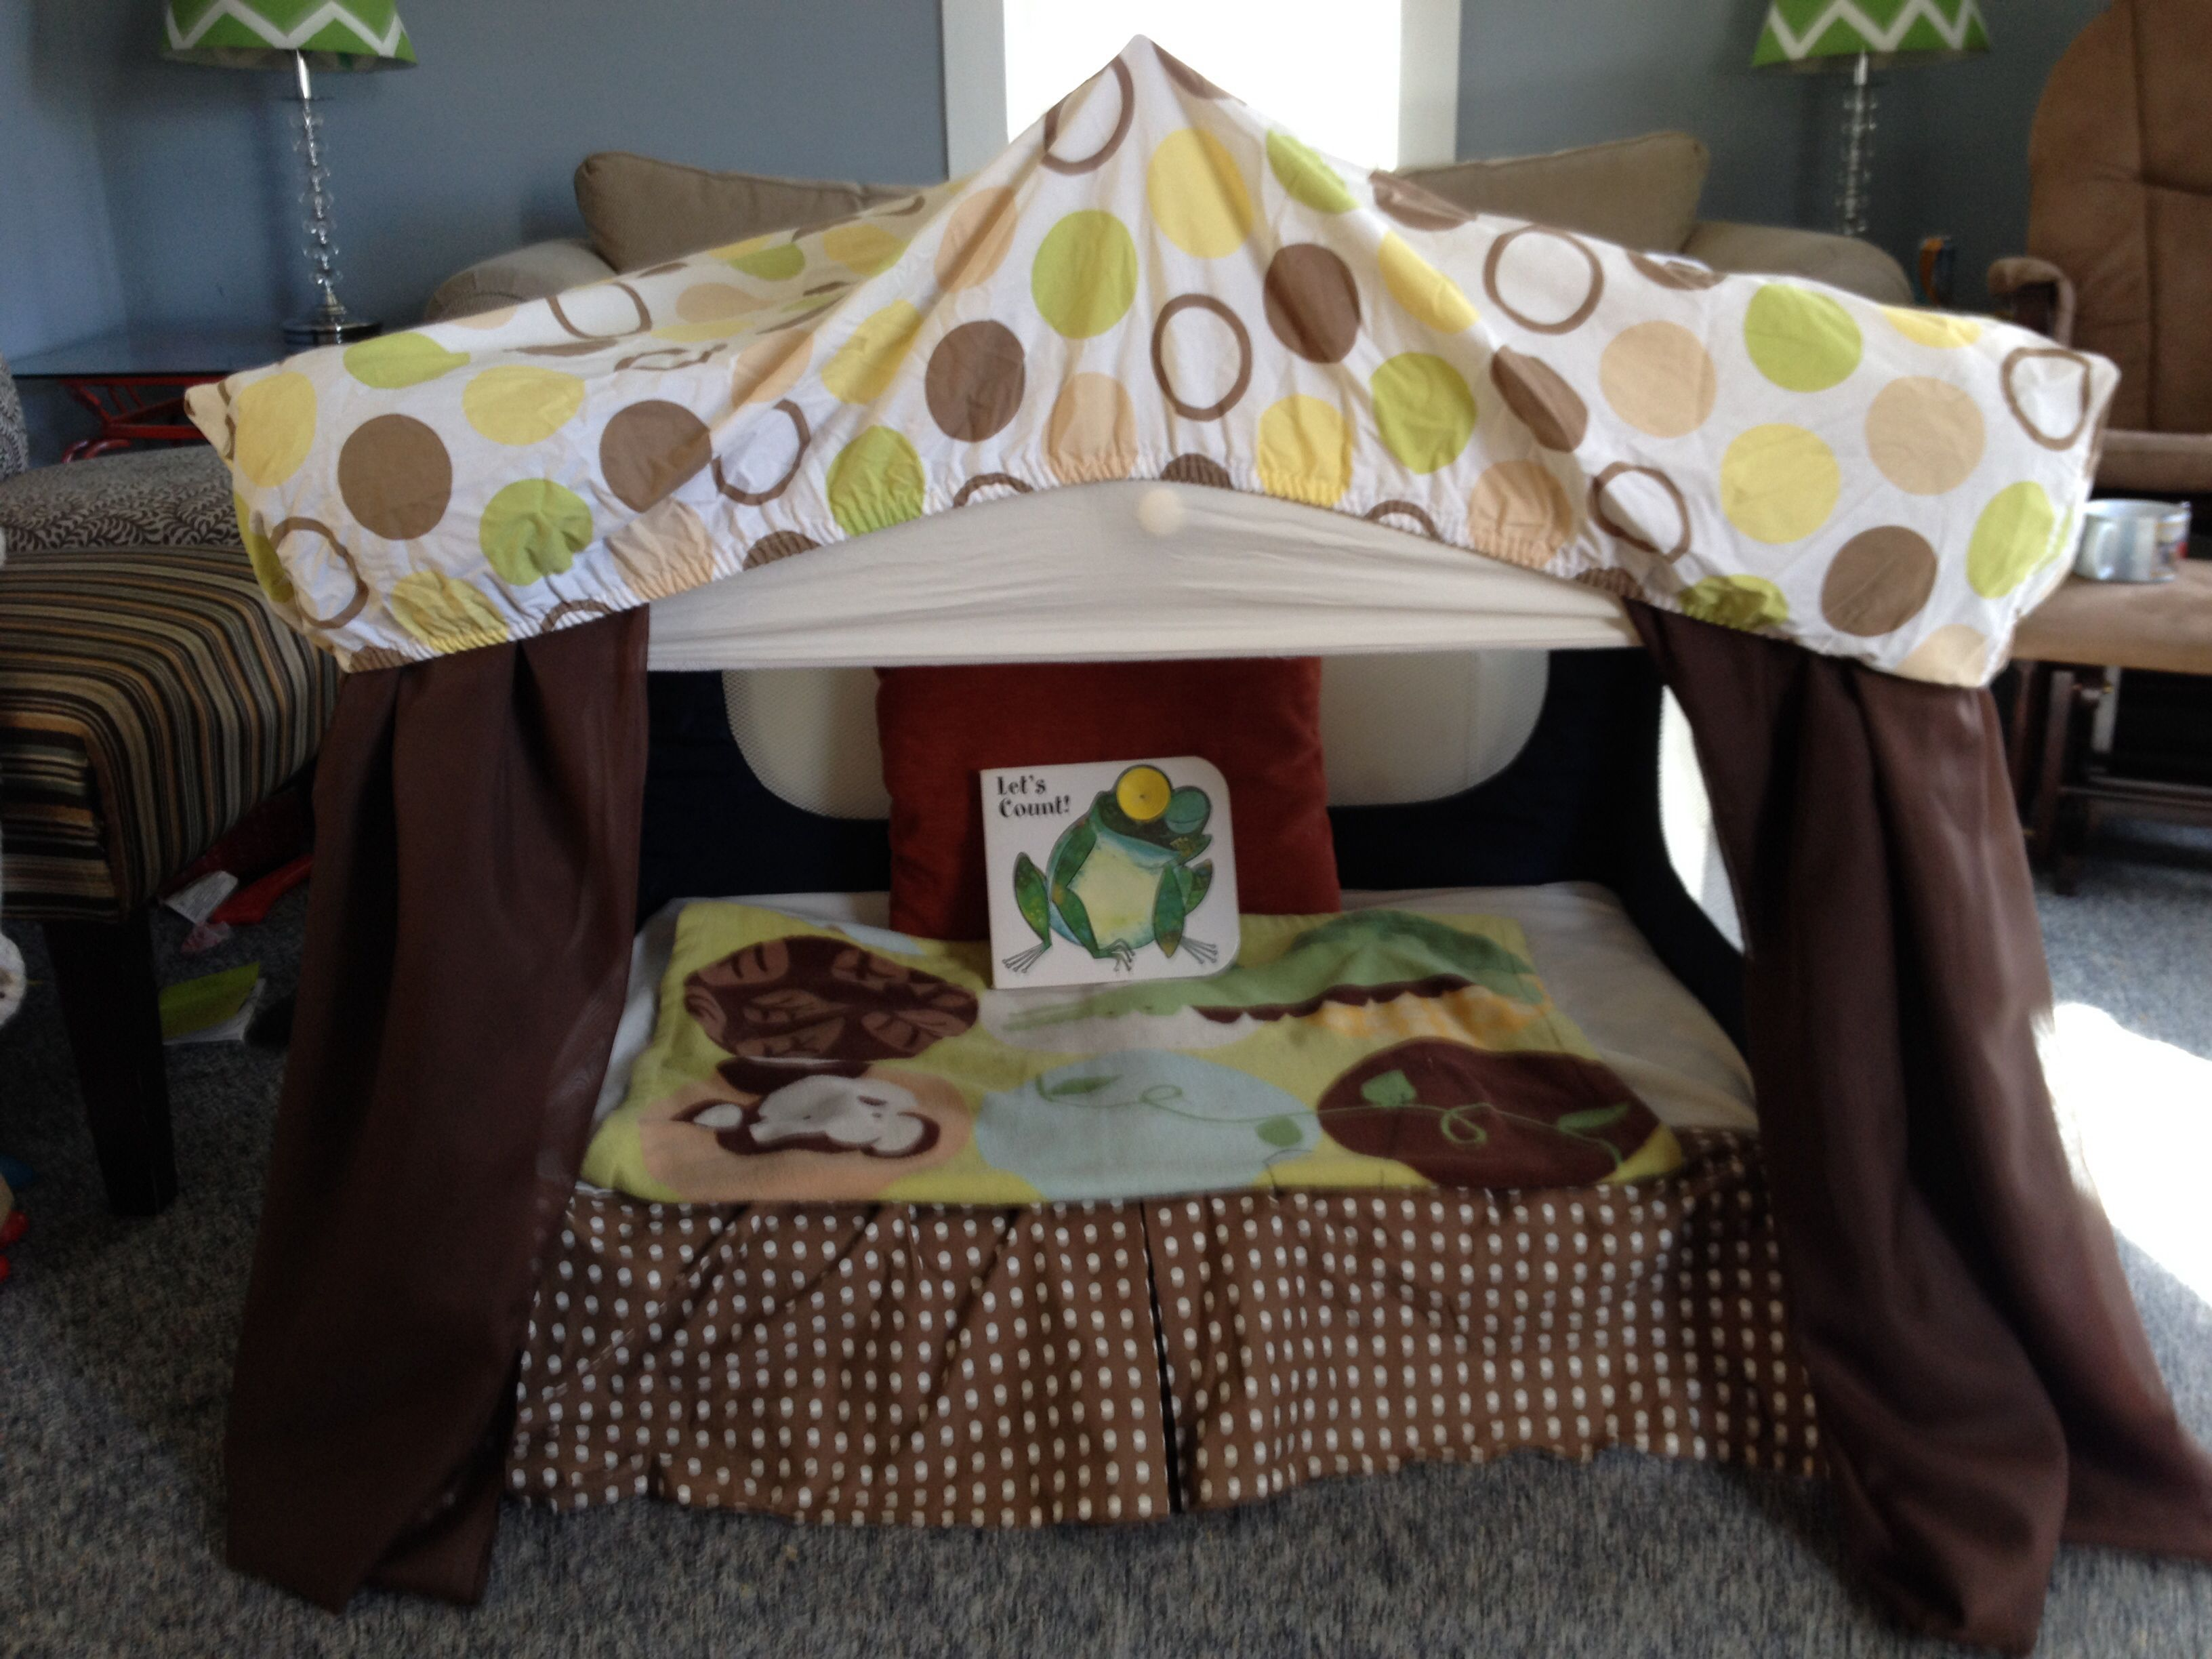 Baby bed turns into toddler bed - I Repurposed The Old Pack And Play Into A Reading Tent